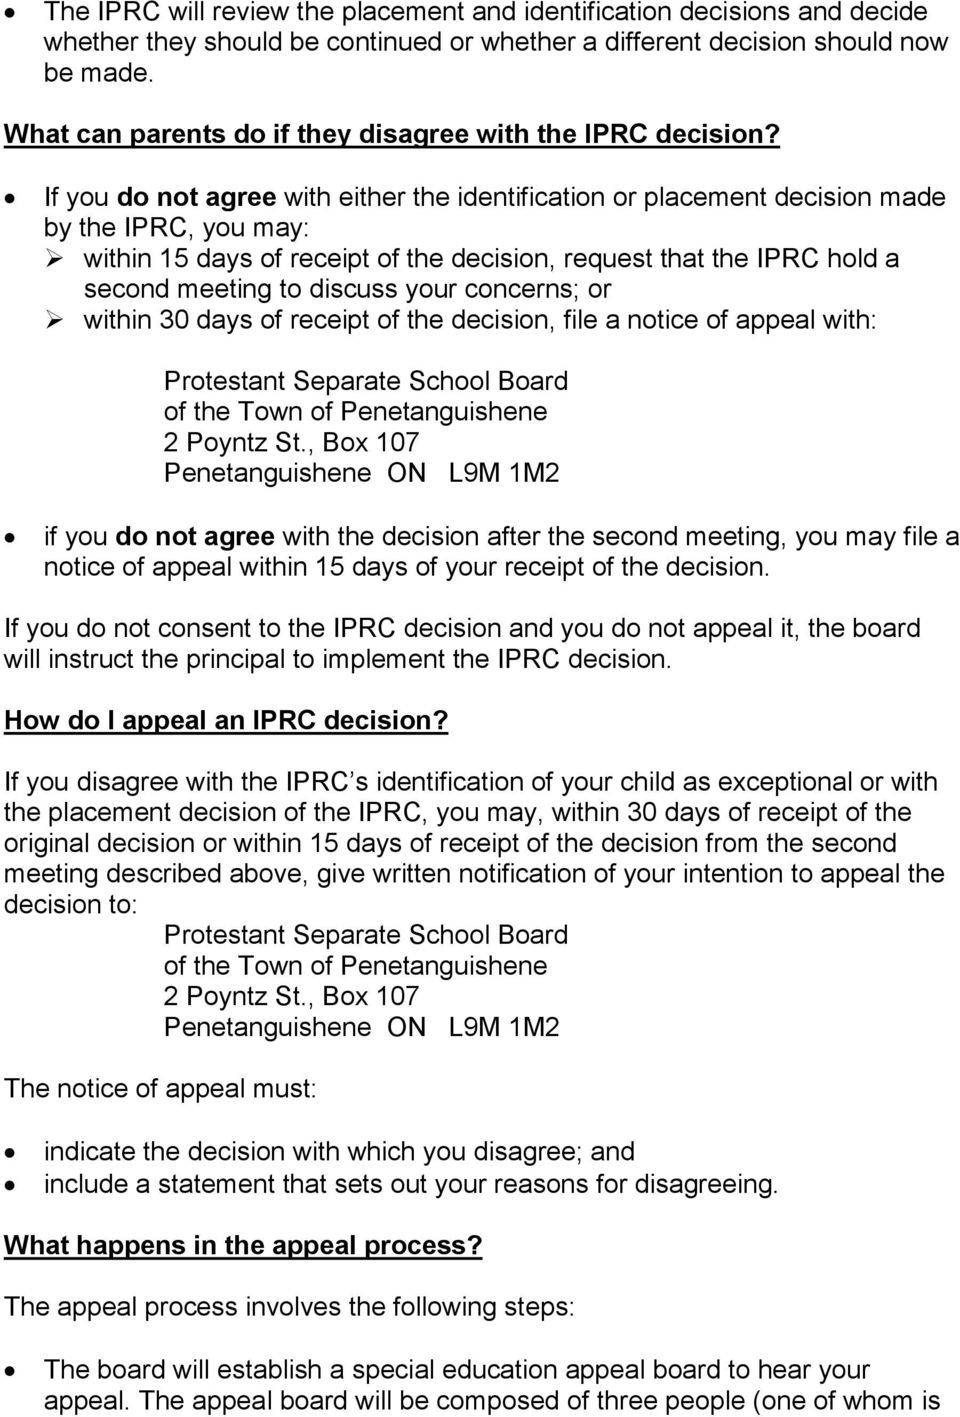 If you do not agree with either the identification or placement decision made by the IPRC, you may: within 15 days of receipt of the decision, request that the IPRC hold a second meeting to discuss